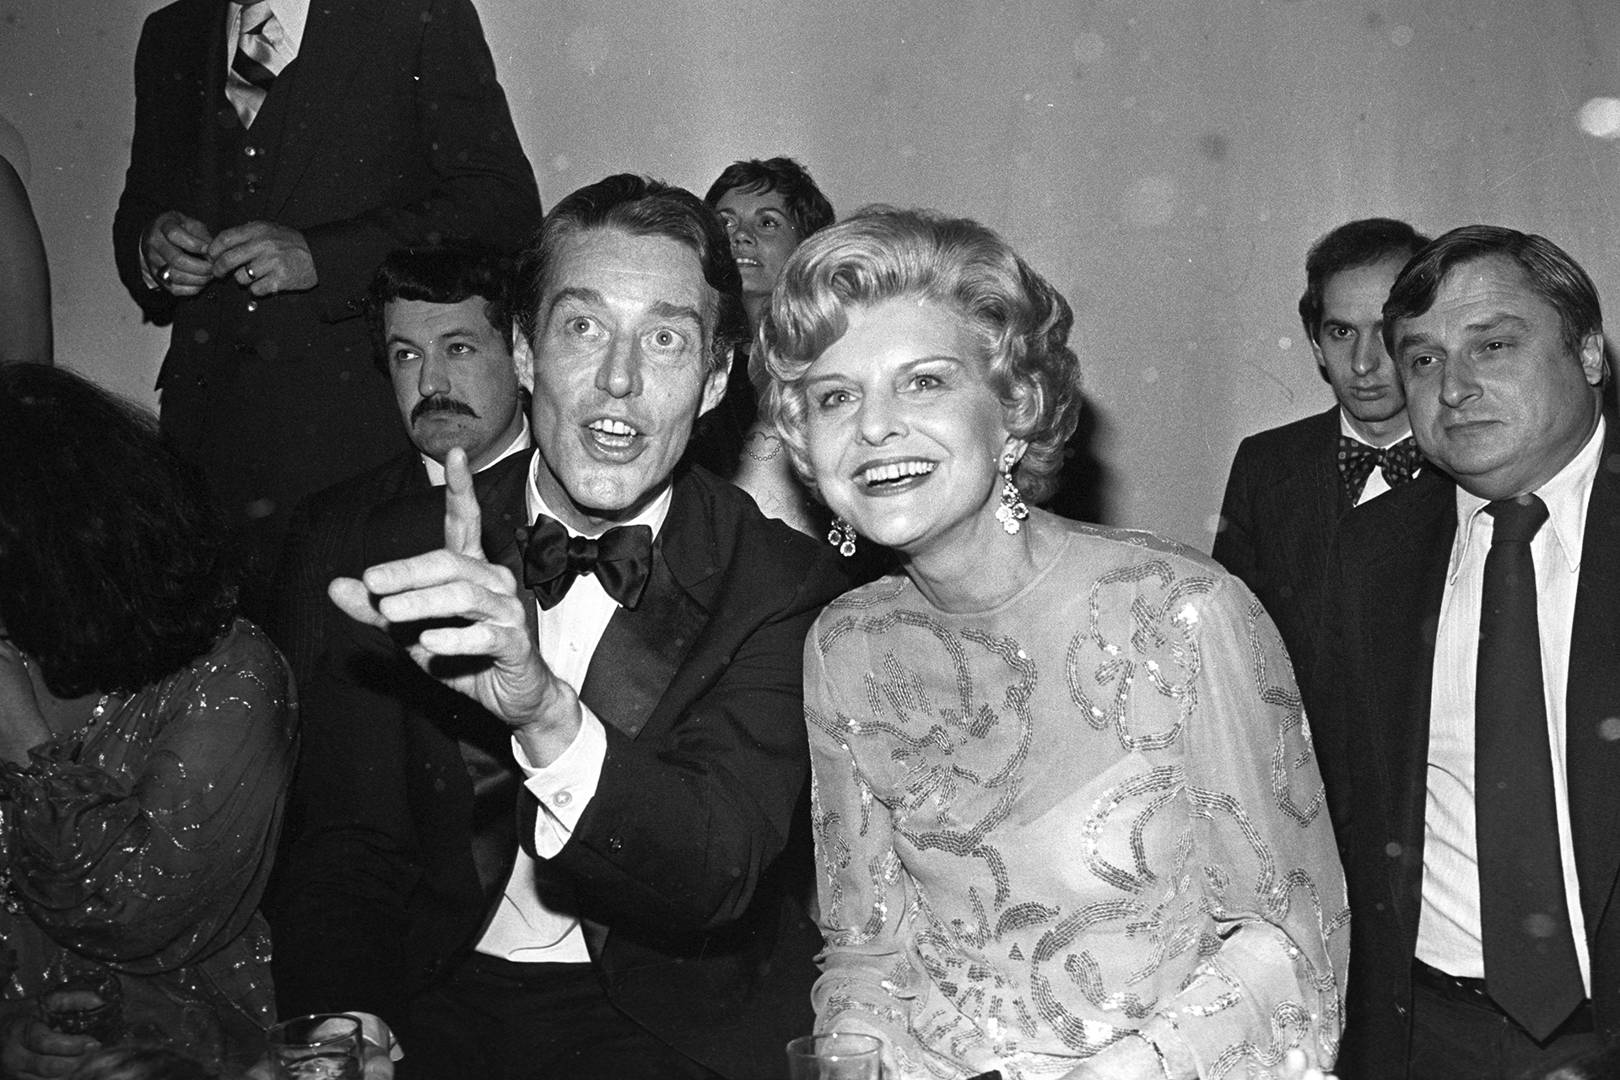 studio 54 pictures, betty ford at studio 54